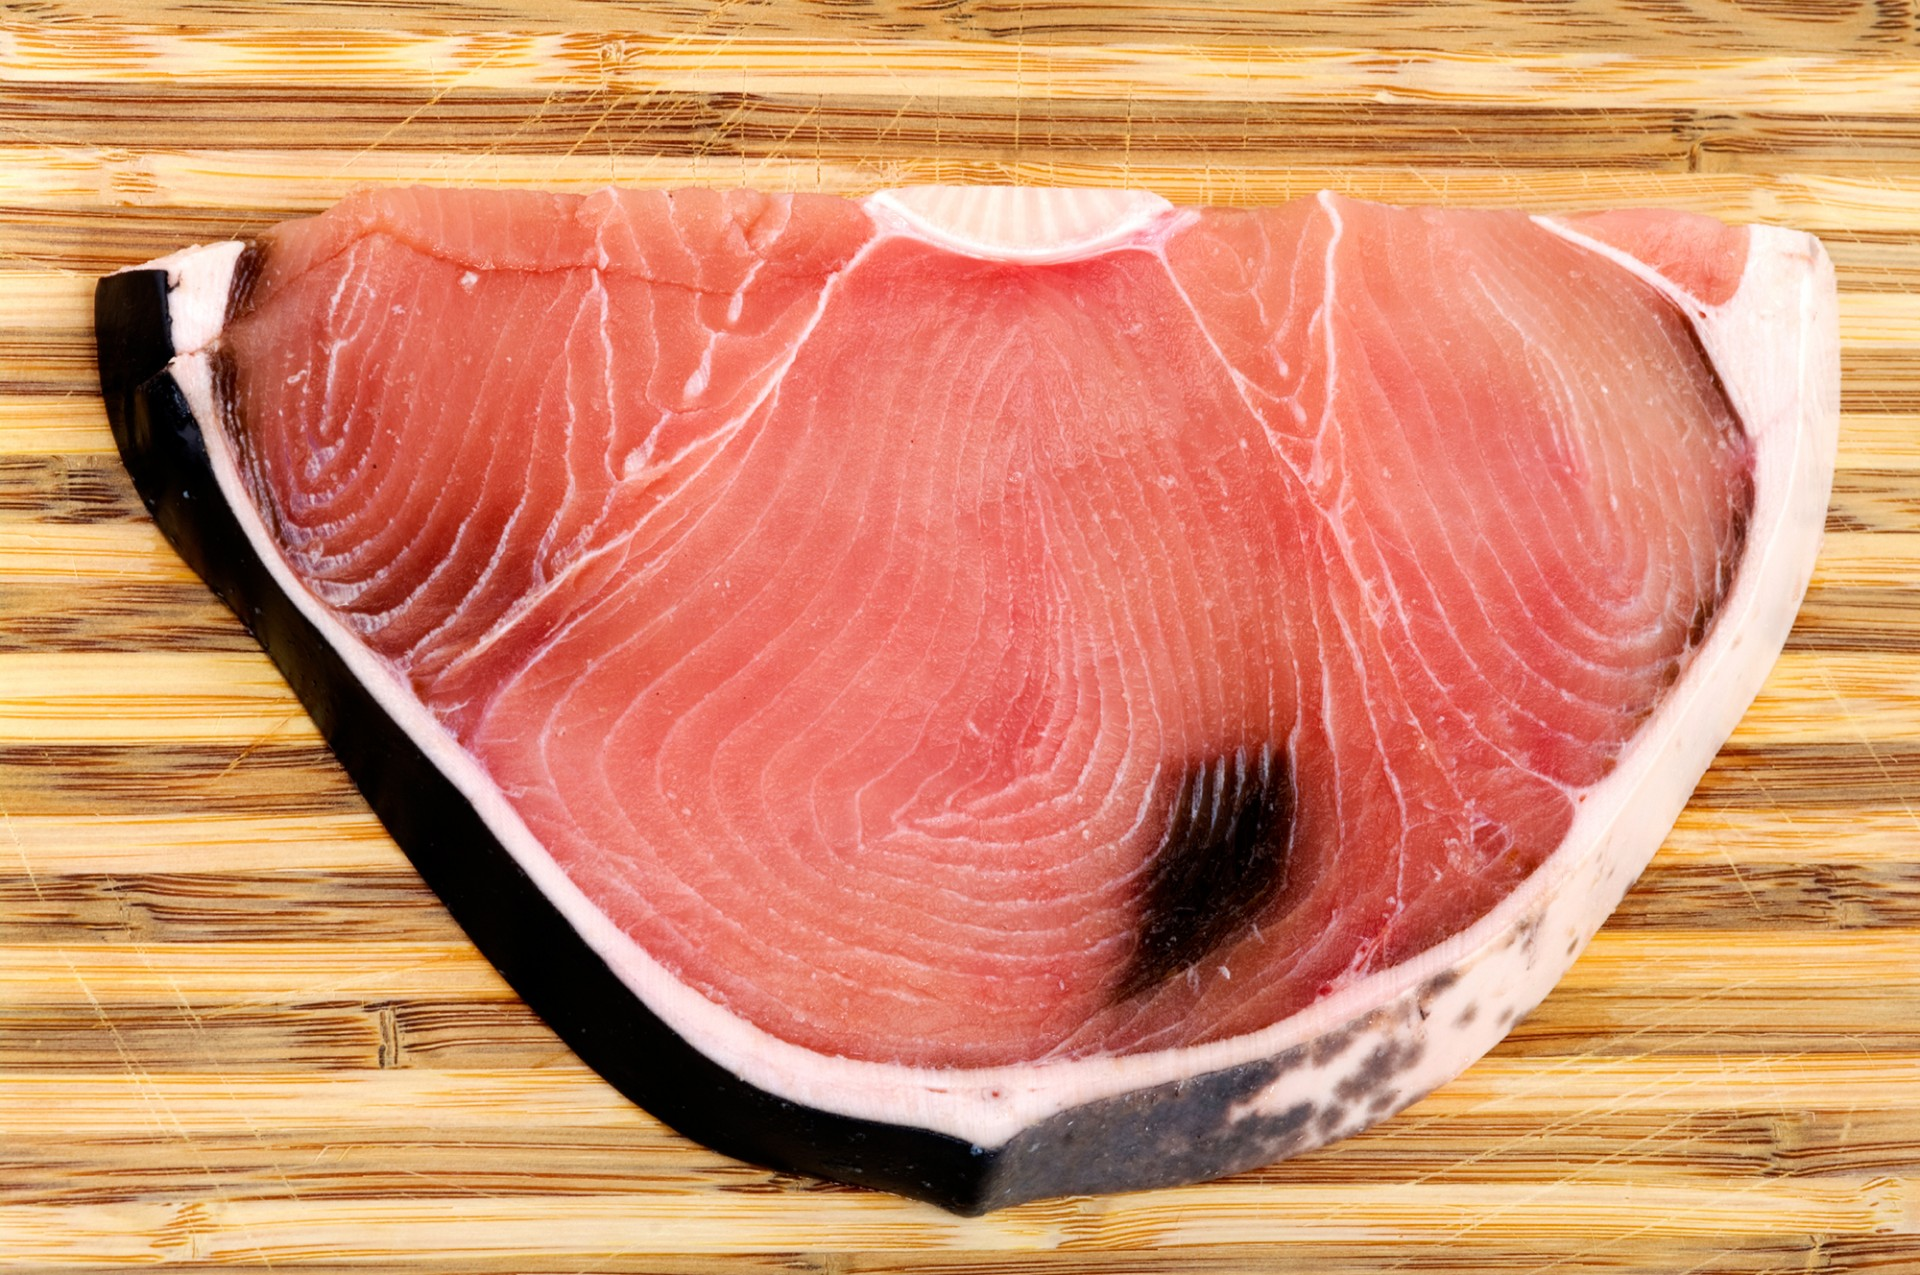 A shark steak. Despite bans on shark fin, the trade in shark meat is going strong. Photo: iStockphoto